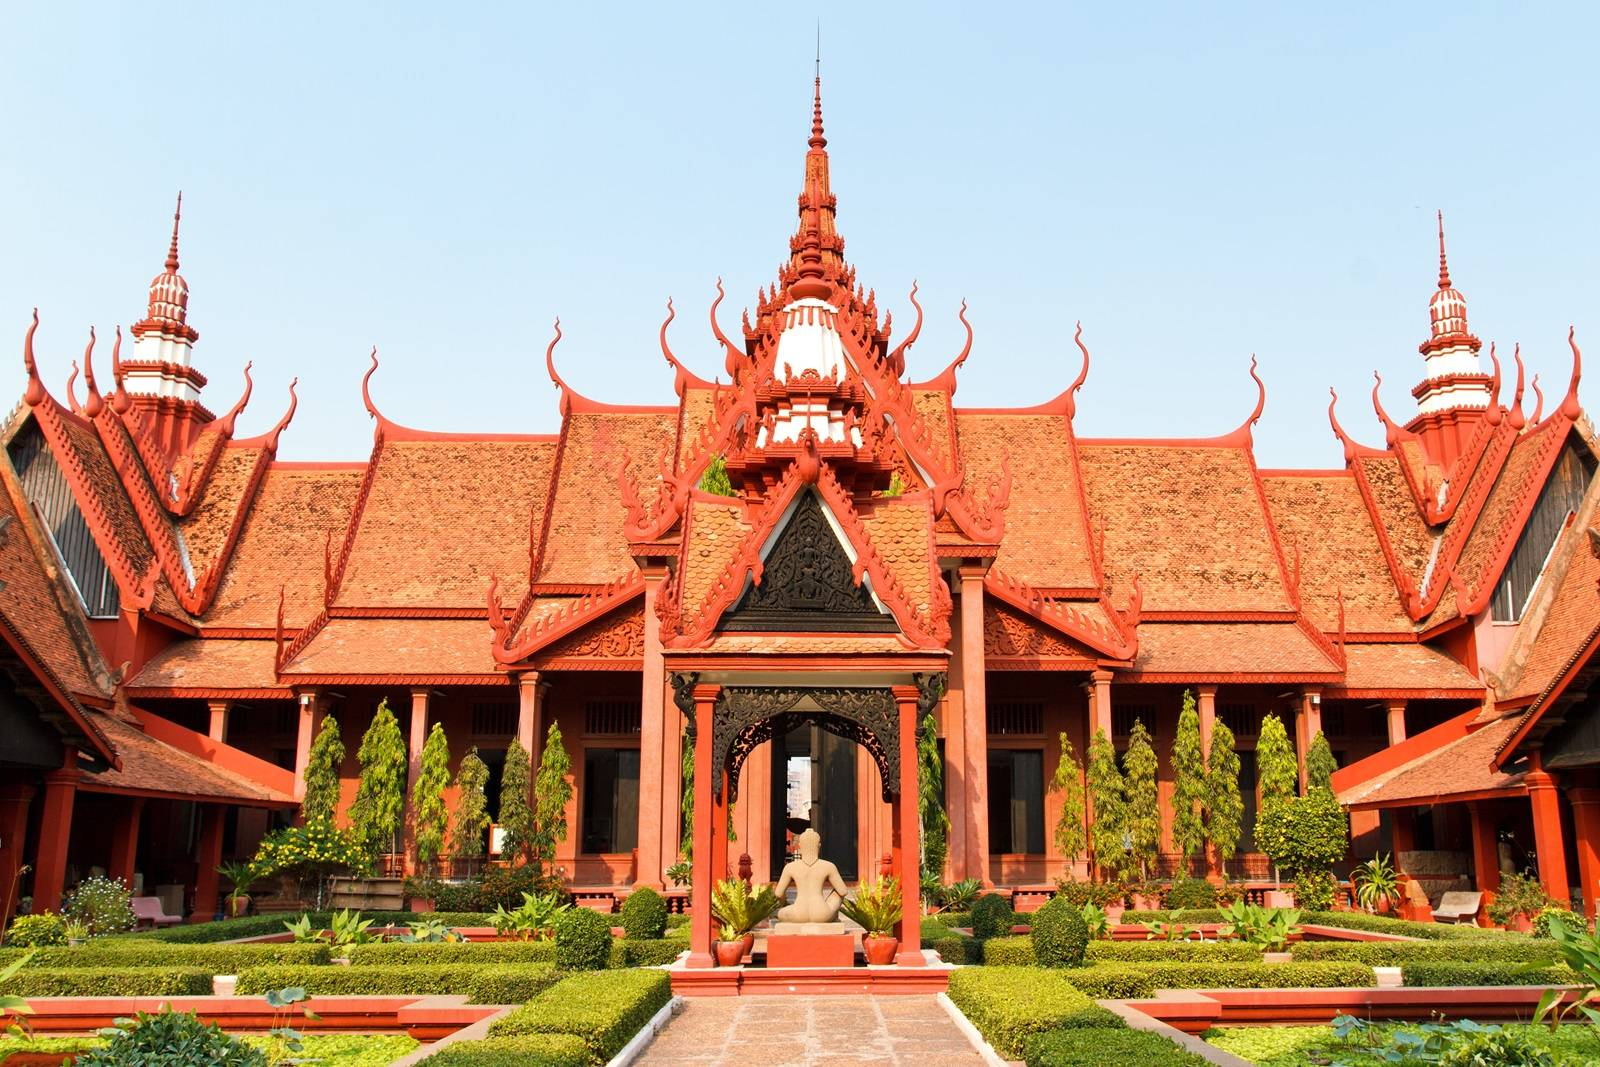 Exterior of the National Museum of Cambodia in Phnom Penh in Cambodia against blue sky